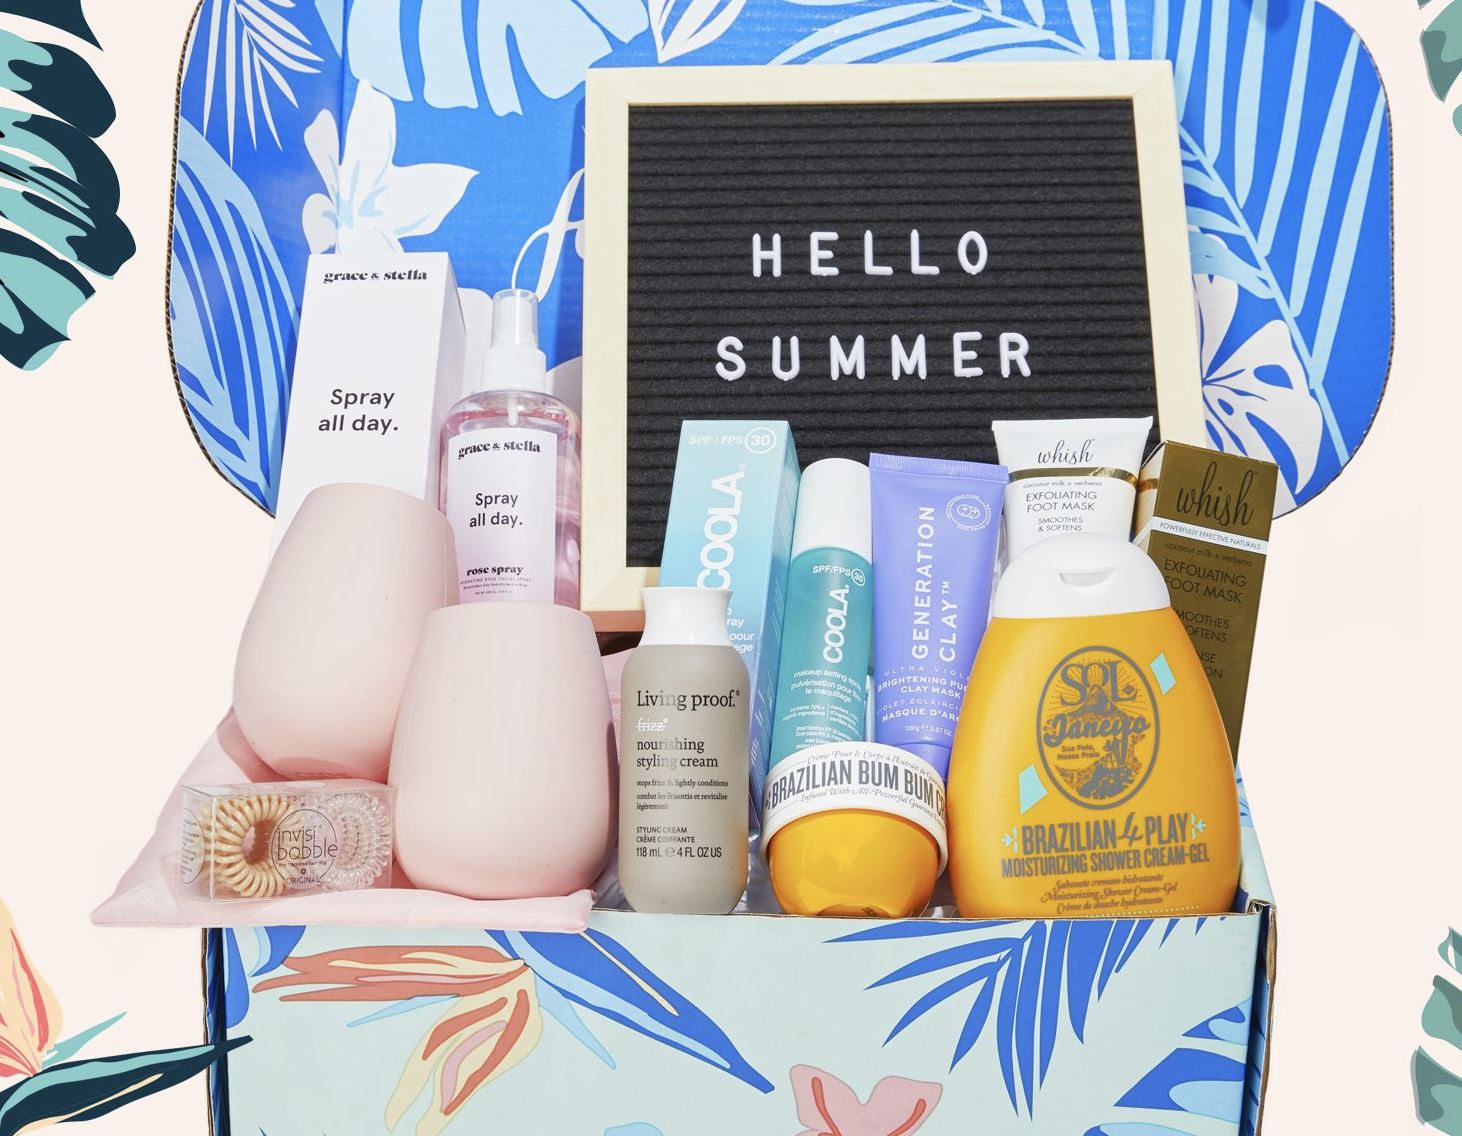 FabFitFun Promo Code: Get $240 worth of full-size products